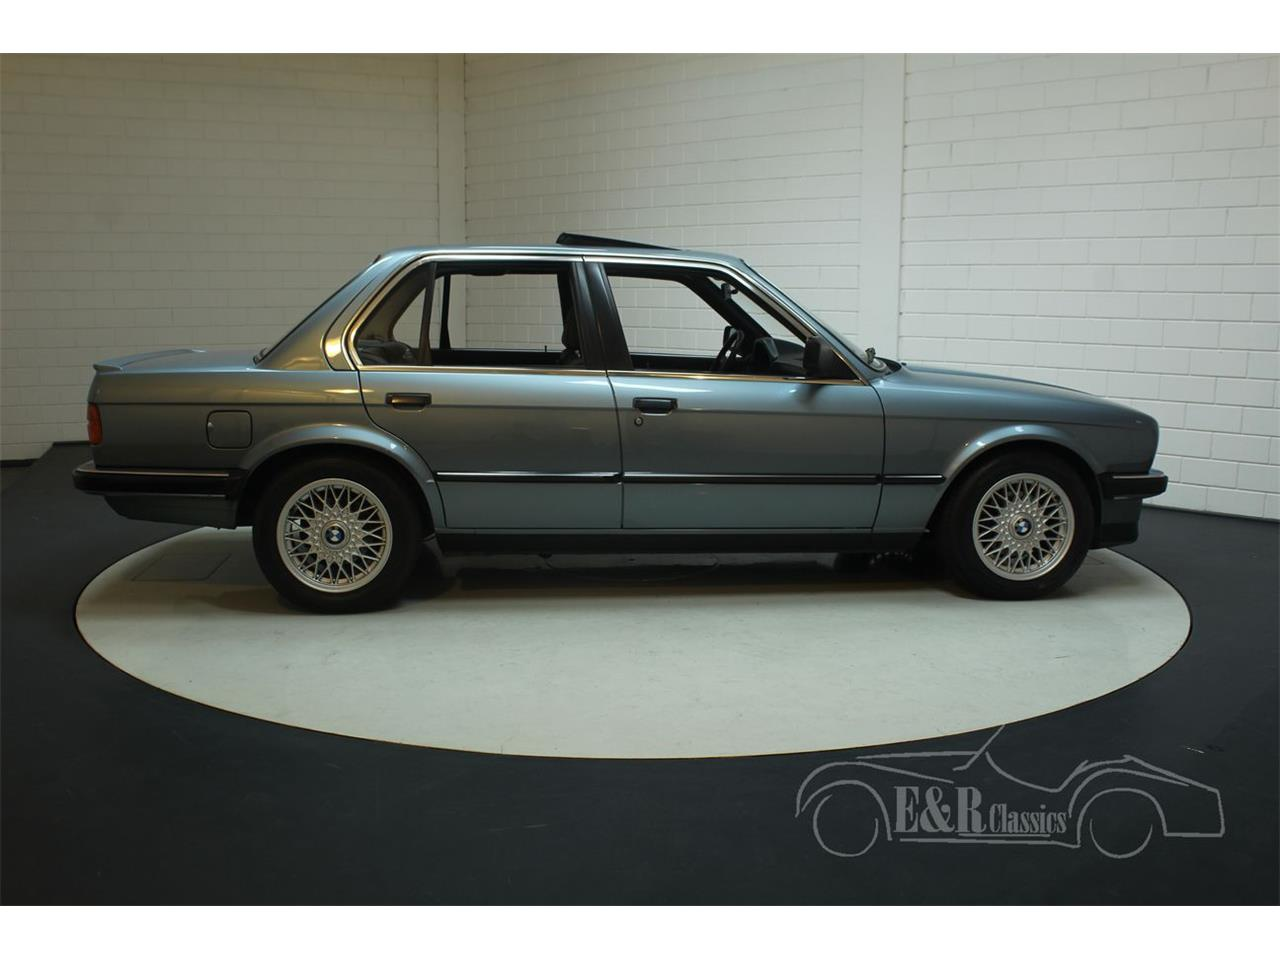 Large Picture of 1986 BMW 325i located in - Keine Angabe - - PGT1